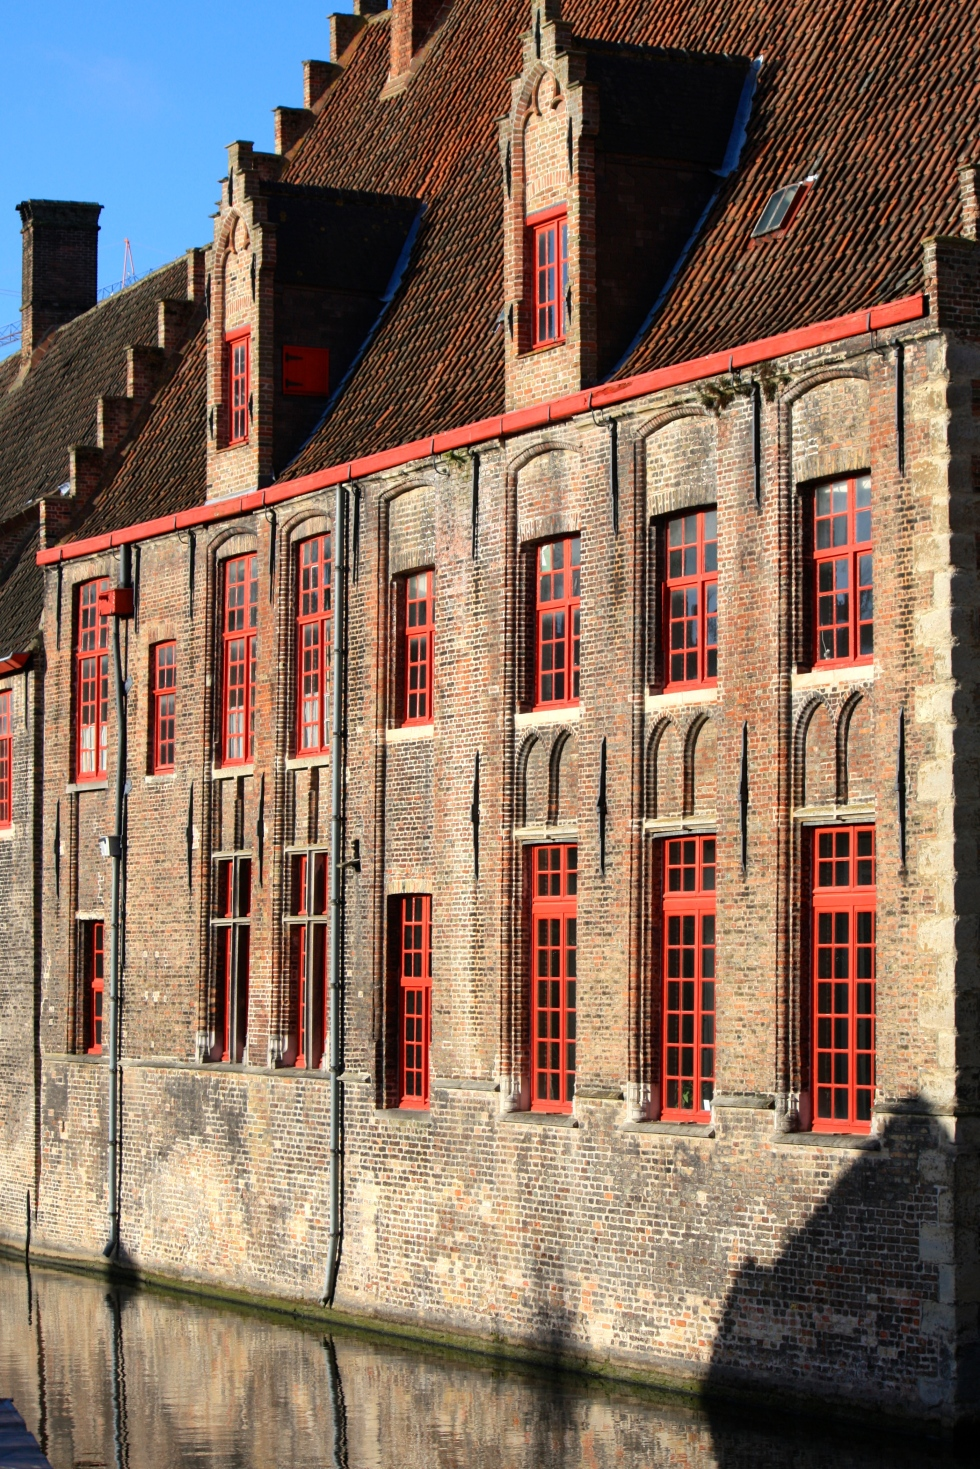 Canalside buildings in Bruges, Belgium, Feb 2014